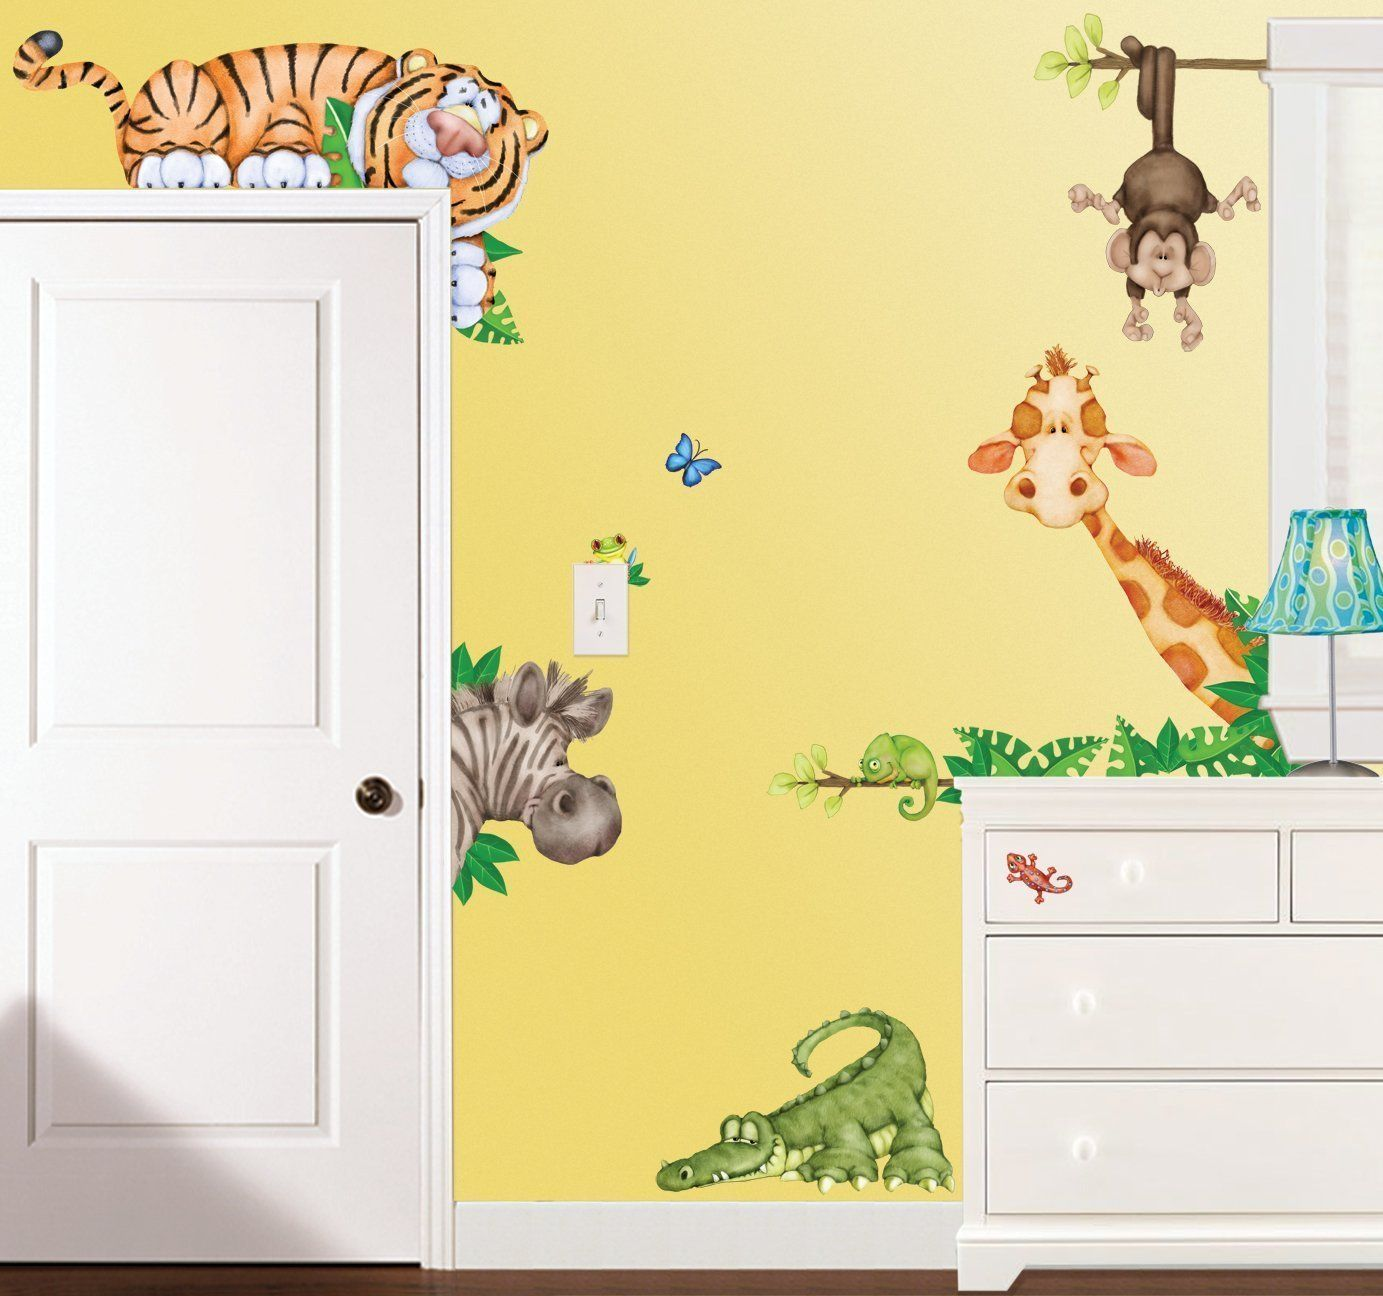 Amazoncom  In The Jungle Large Wall Decals  Stickers  Wall - Wall decals animals